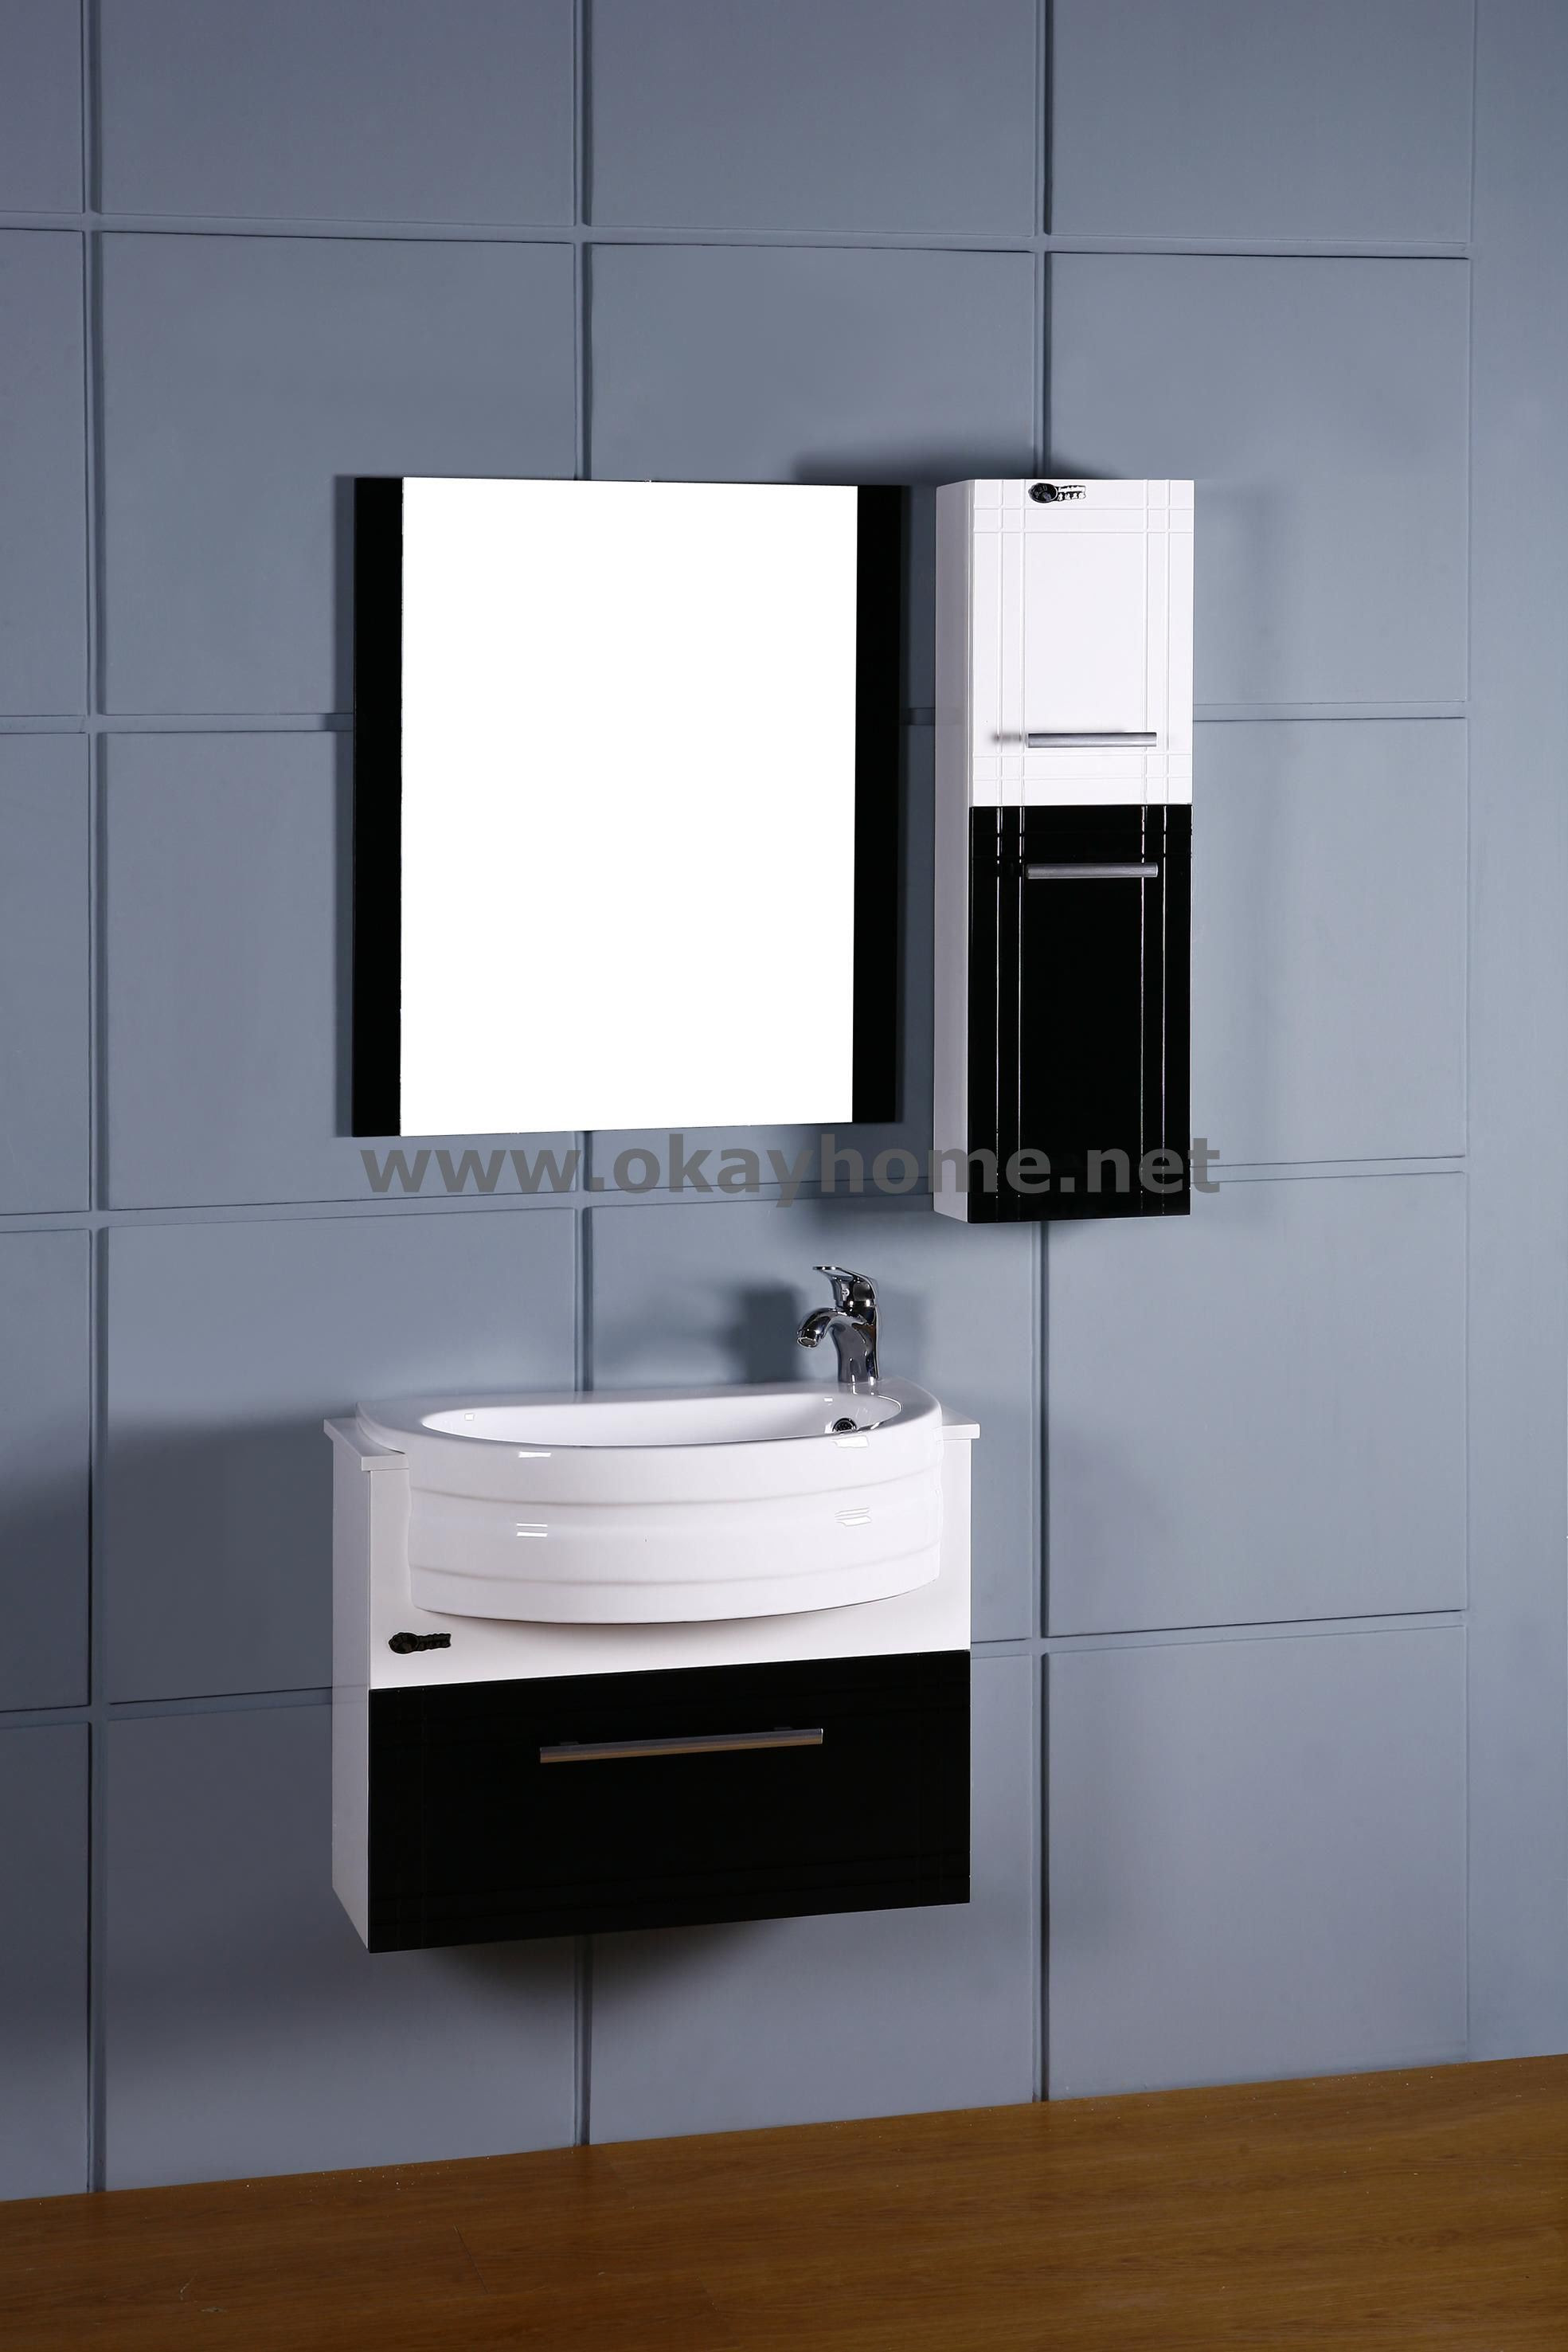 Plastic Wall Mounted Cabinets